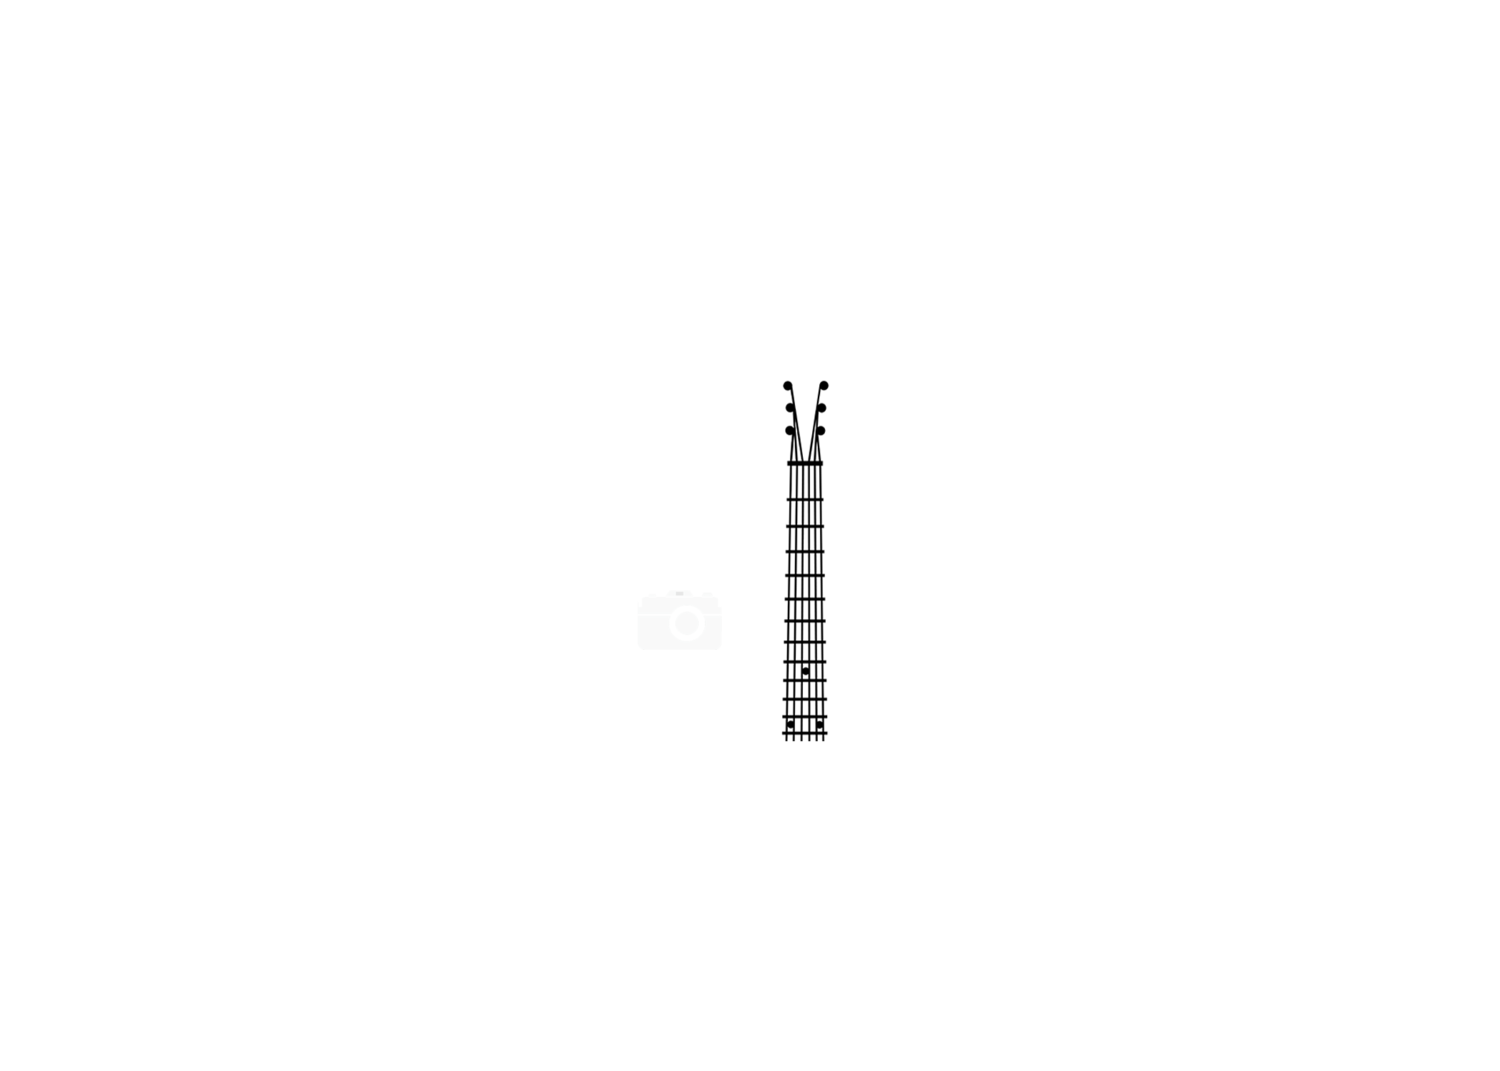 Frenchie's Photography